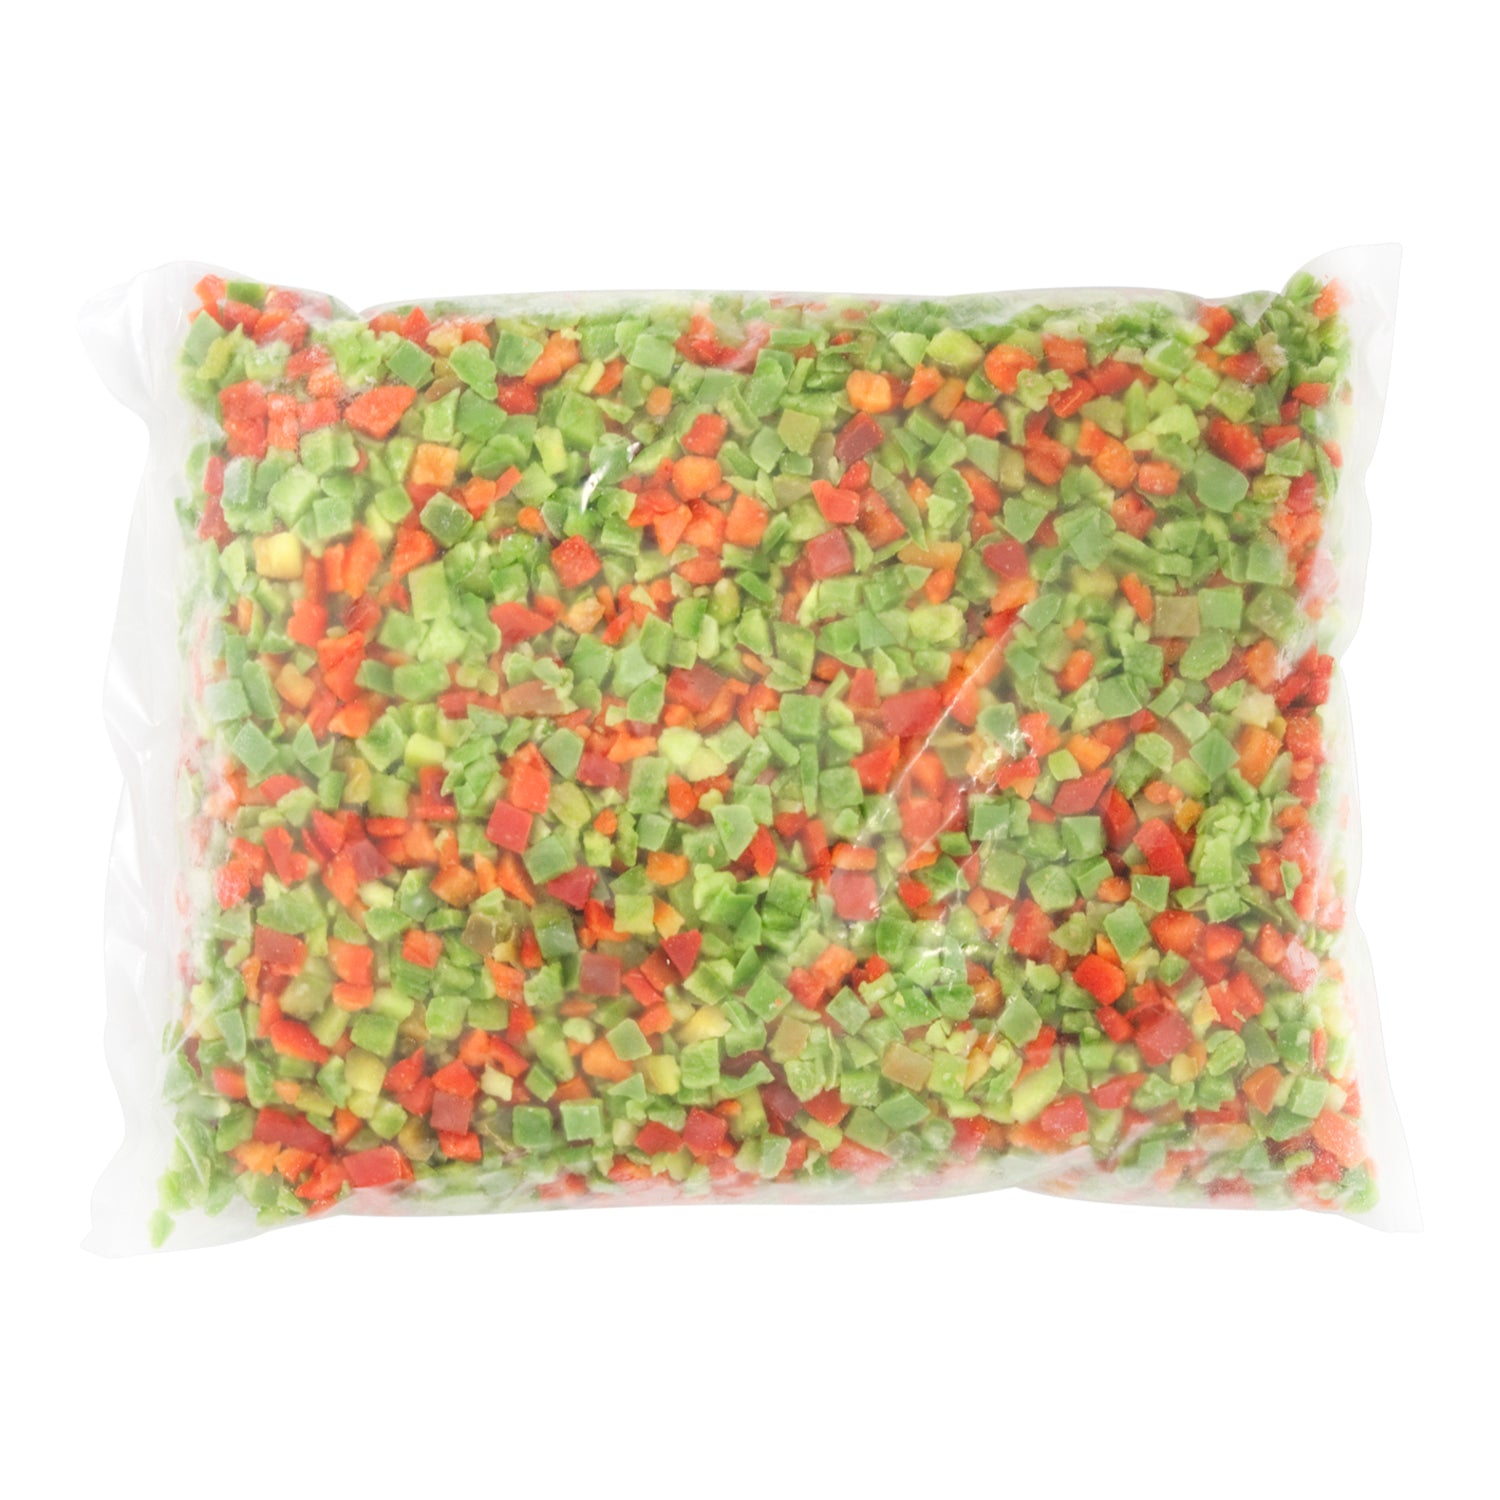 Alasko Frozen Diced Green and Red Bell Peppers 2 kg - 6 Pack [$3.83/kg]